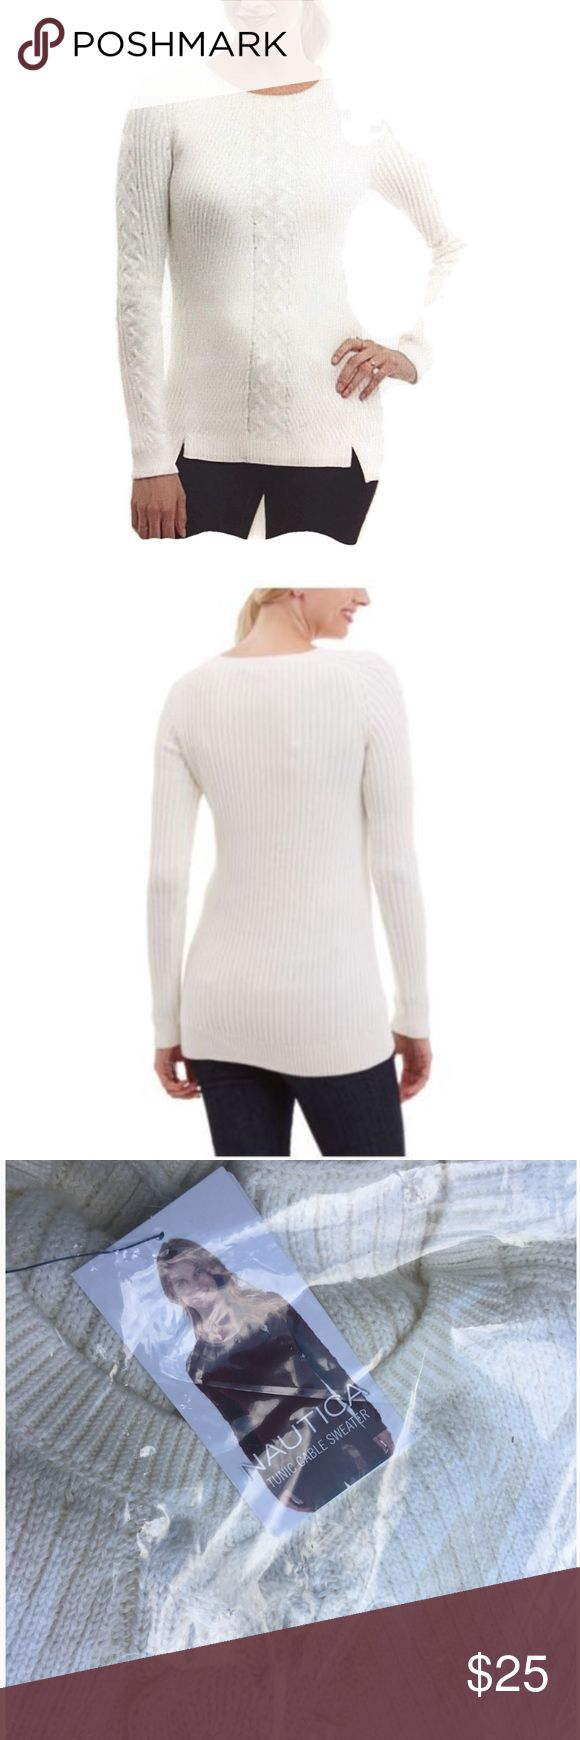 Nautica 100% Cotton Cable Knit Tunic Sweater White Authentic Brand new in manufacturers packaging. color: White. Nautica Sweaters